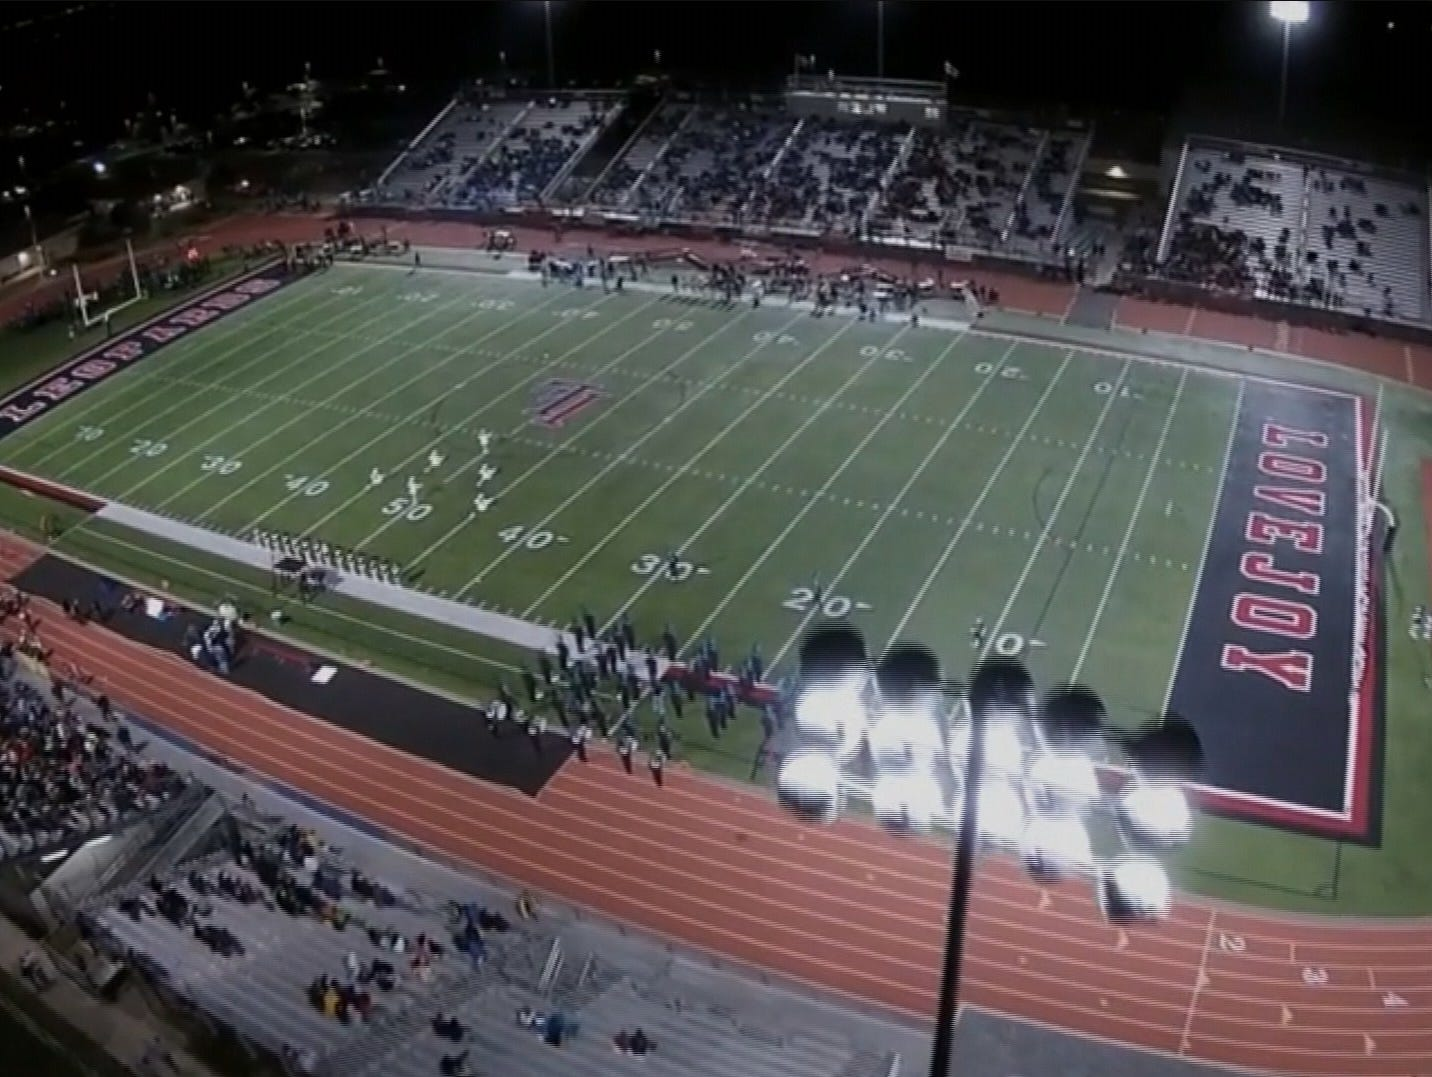 Drone video captured at Lovejoy's football stadium.